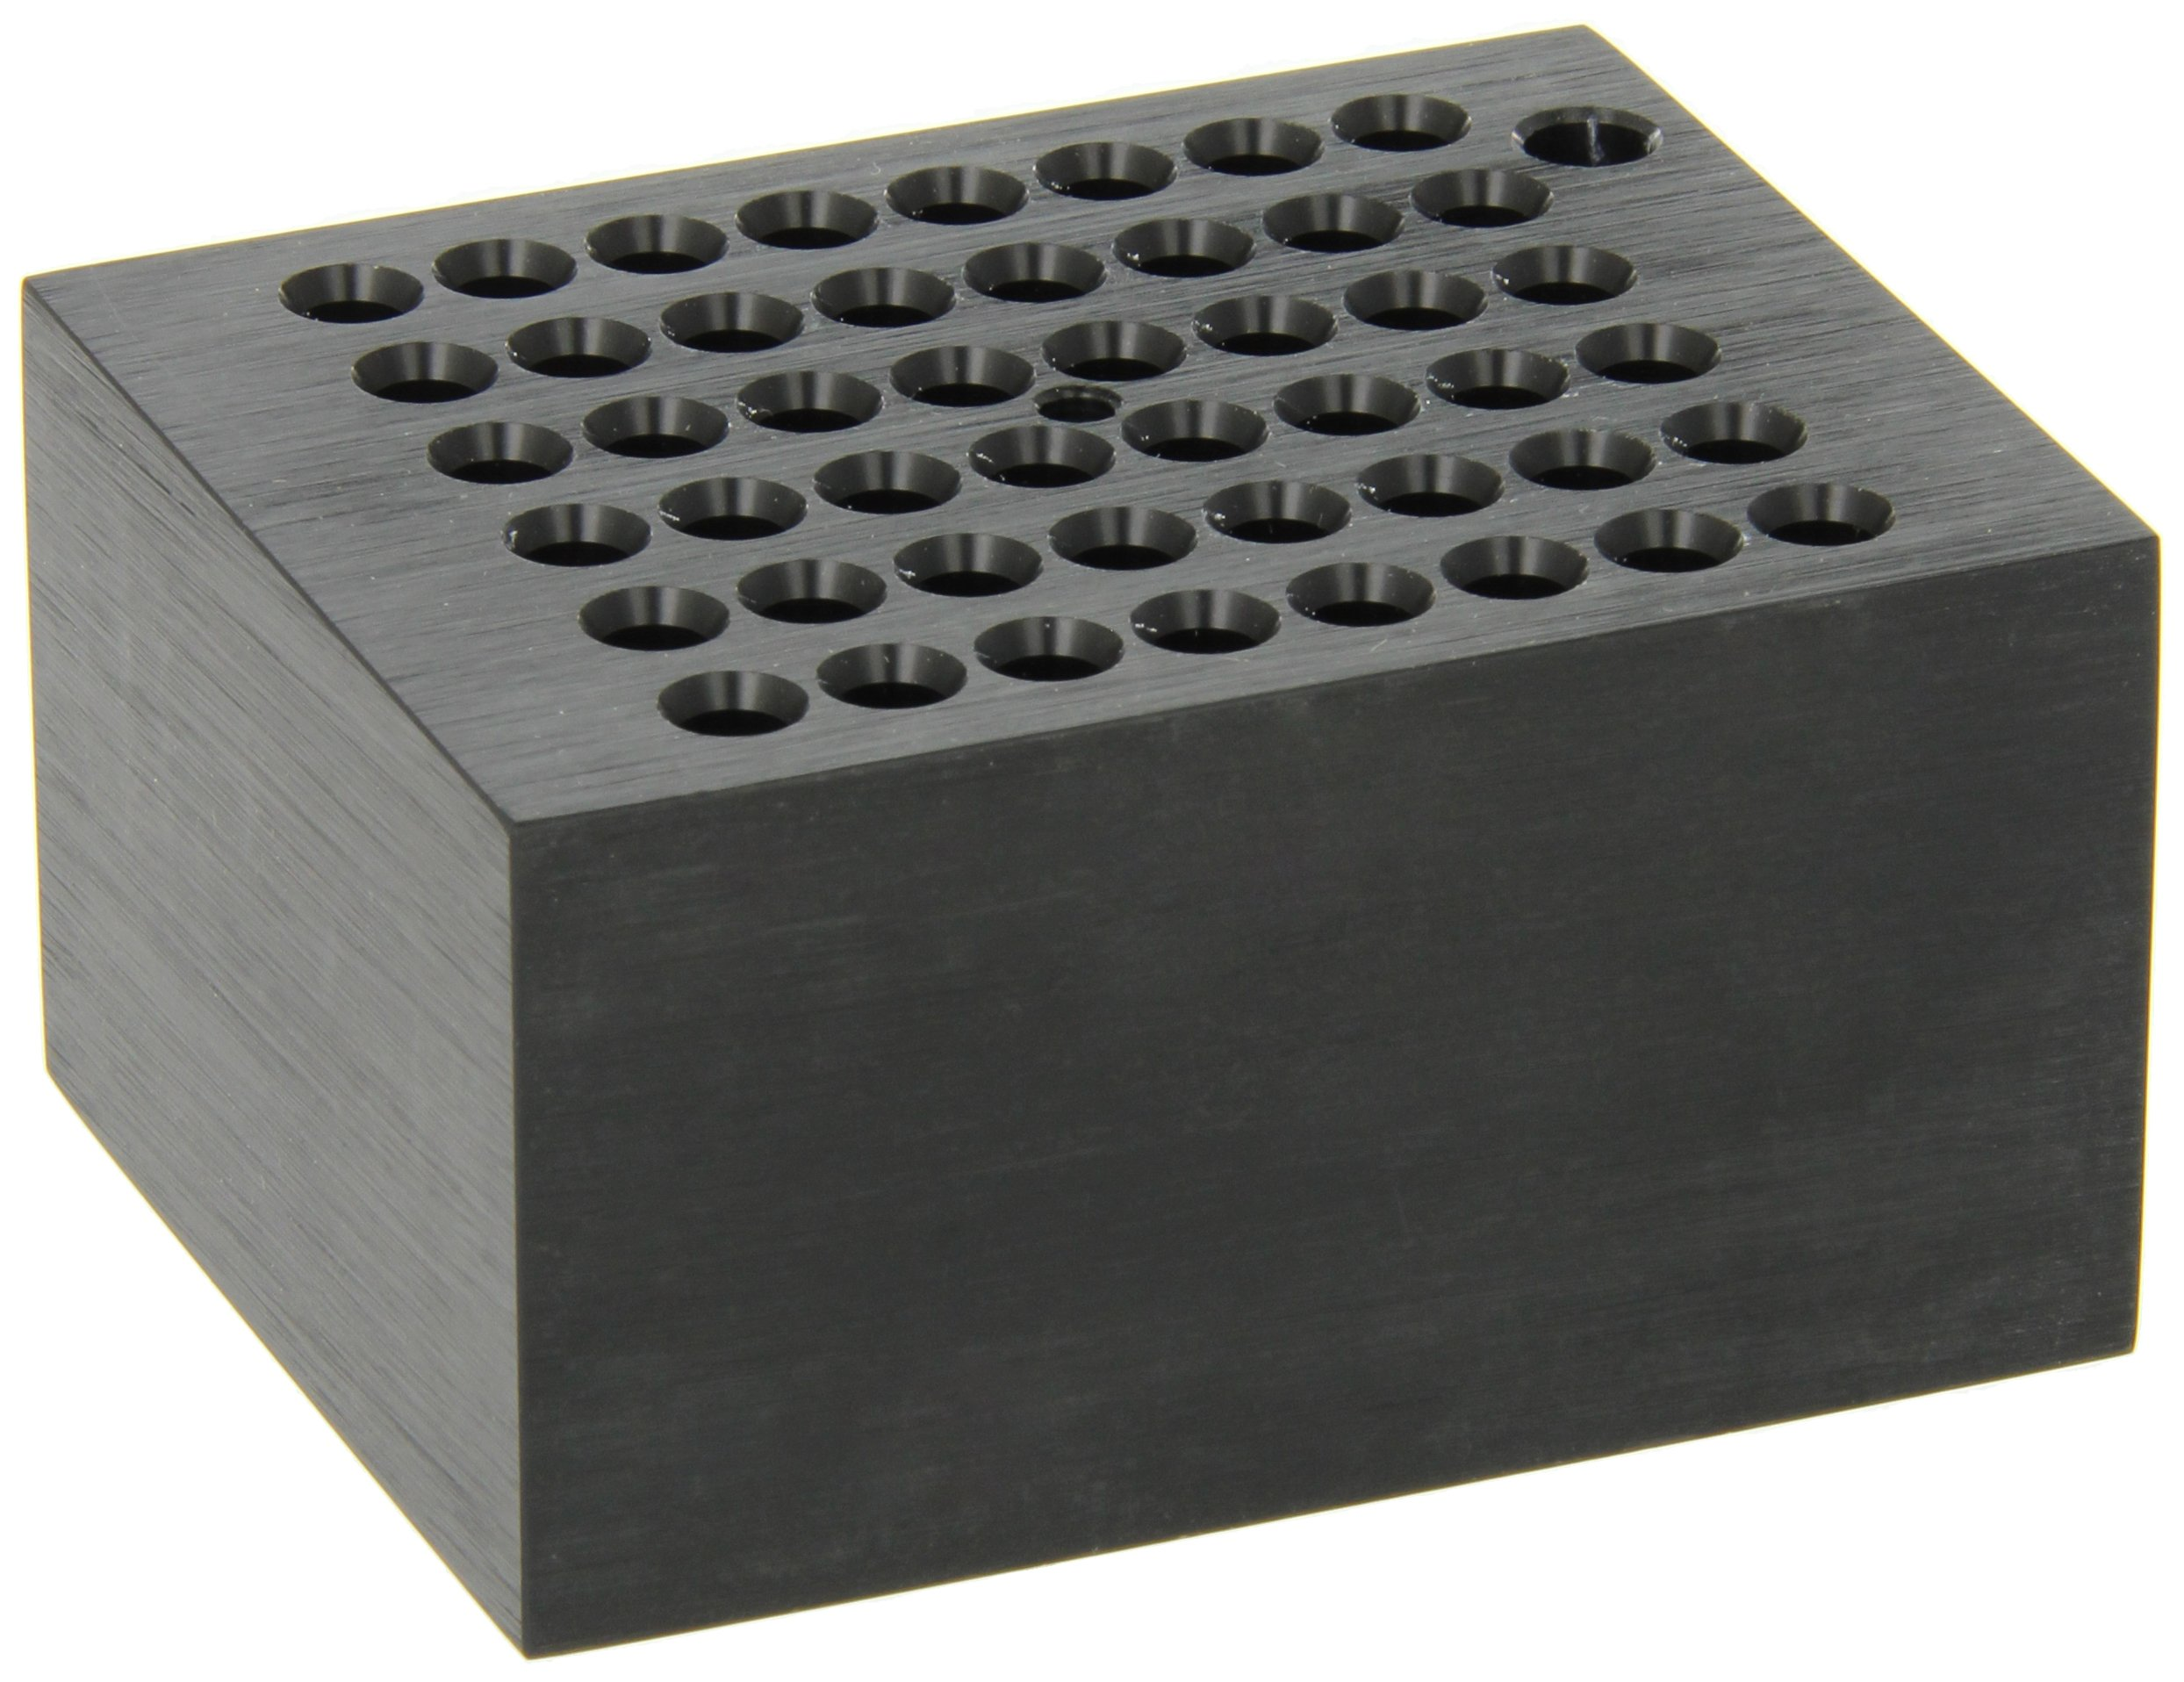 Boekel 110048 Test Tube Block Module, Holds 48 x 0.2mm Tubes